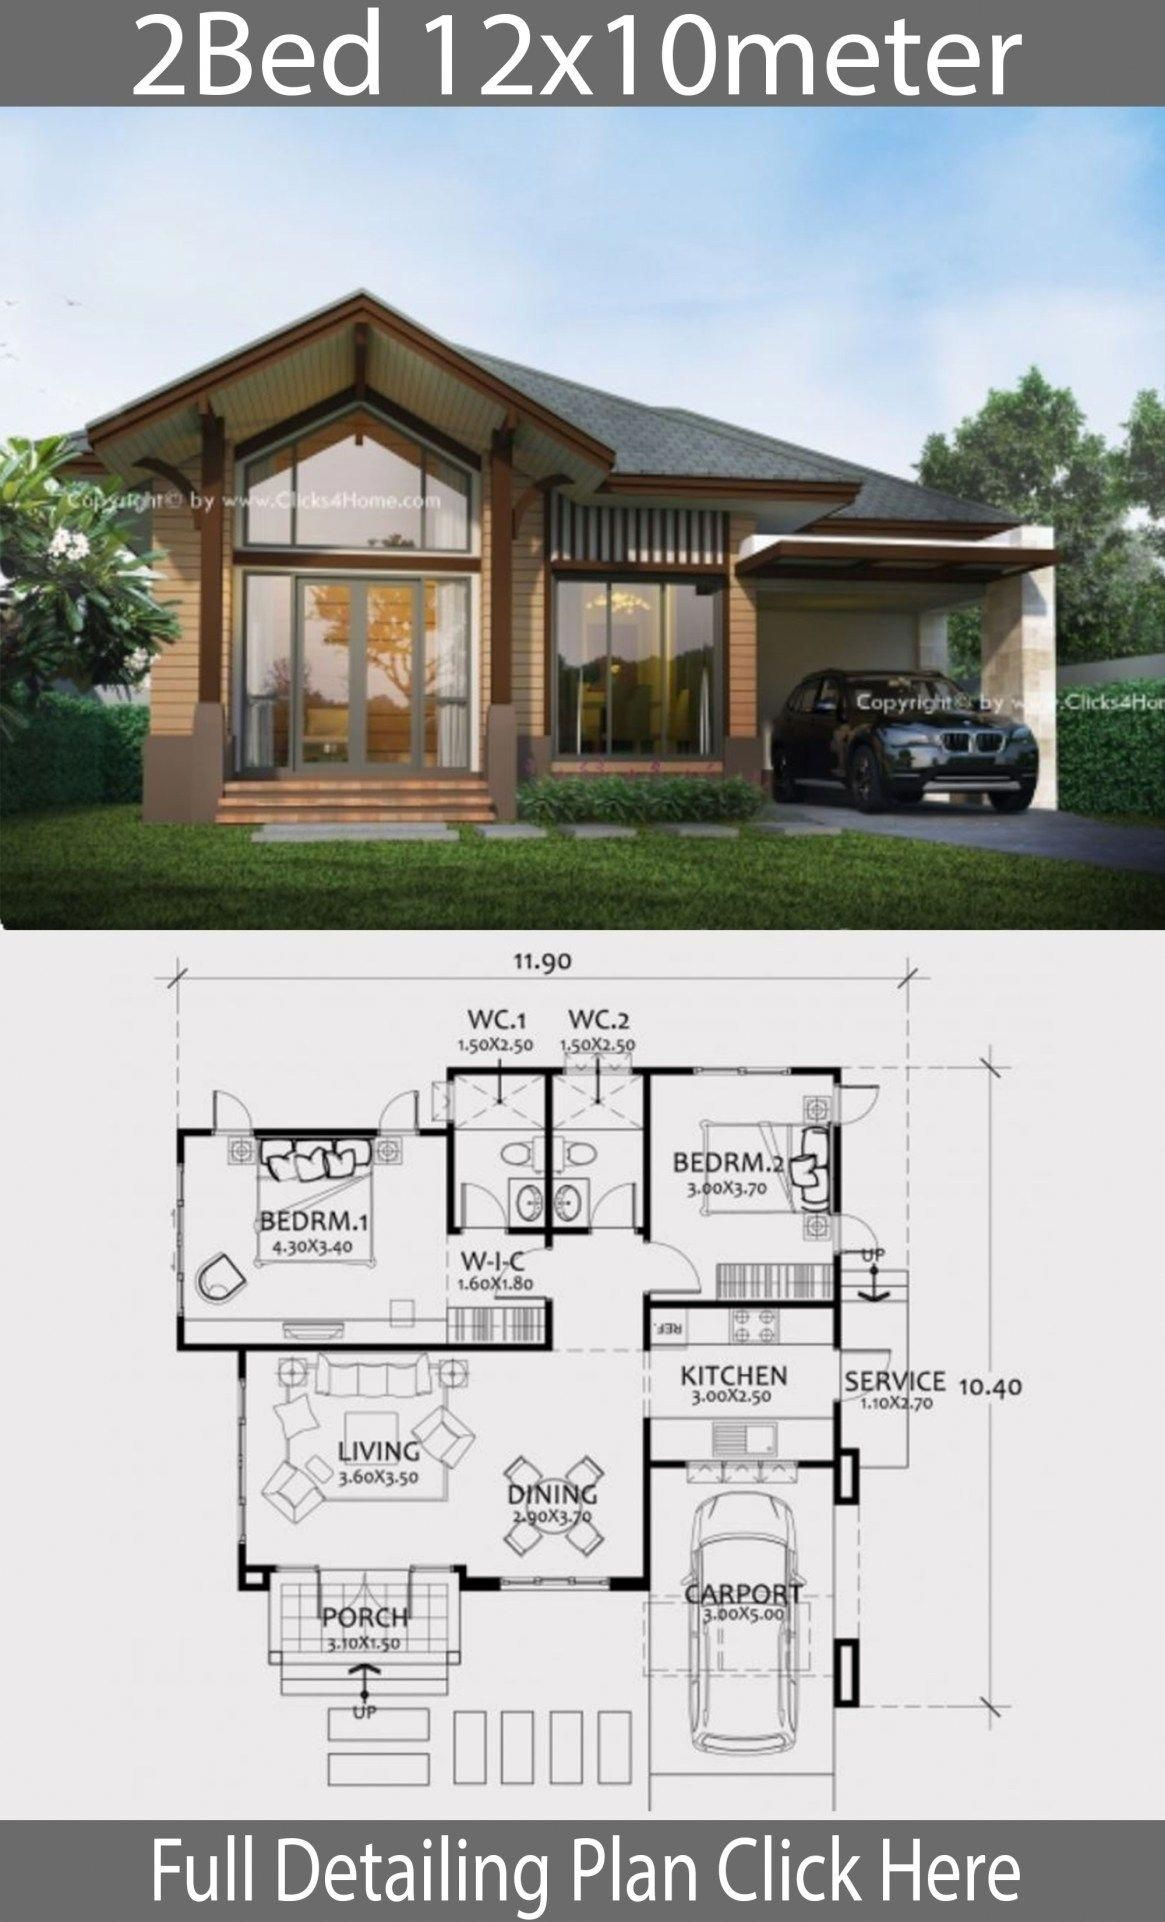 Home Design Plan 12x10m With 2 Bedrooms Home Design With Plansearch Luxuryhomeinterior Beautiful House Plans Modern House Plans Home Design Plan